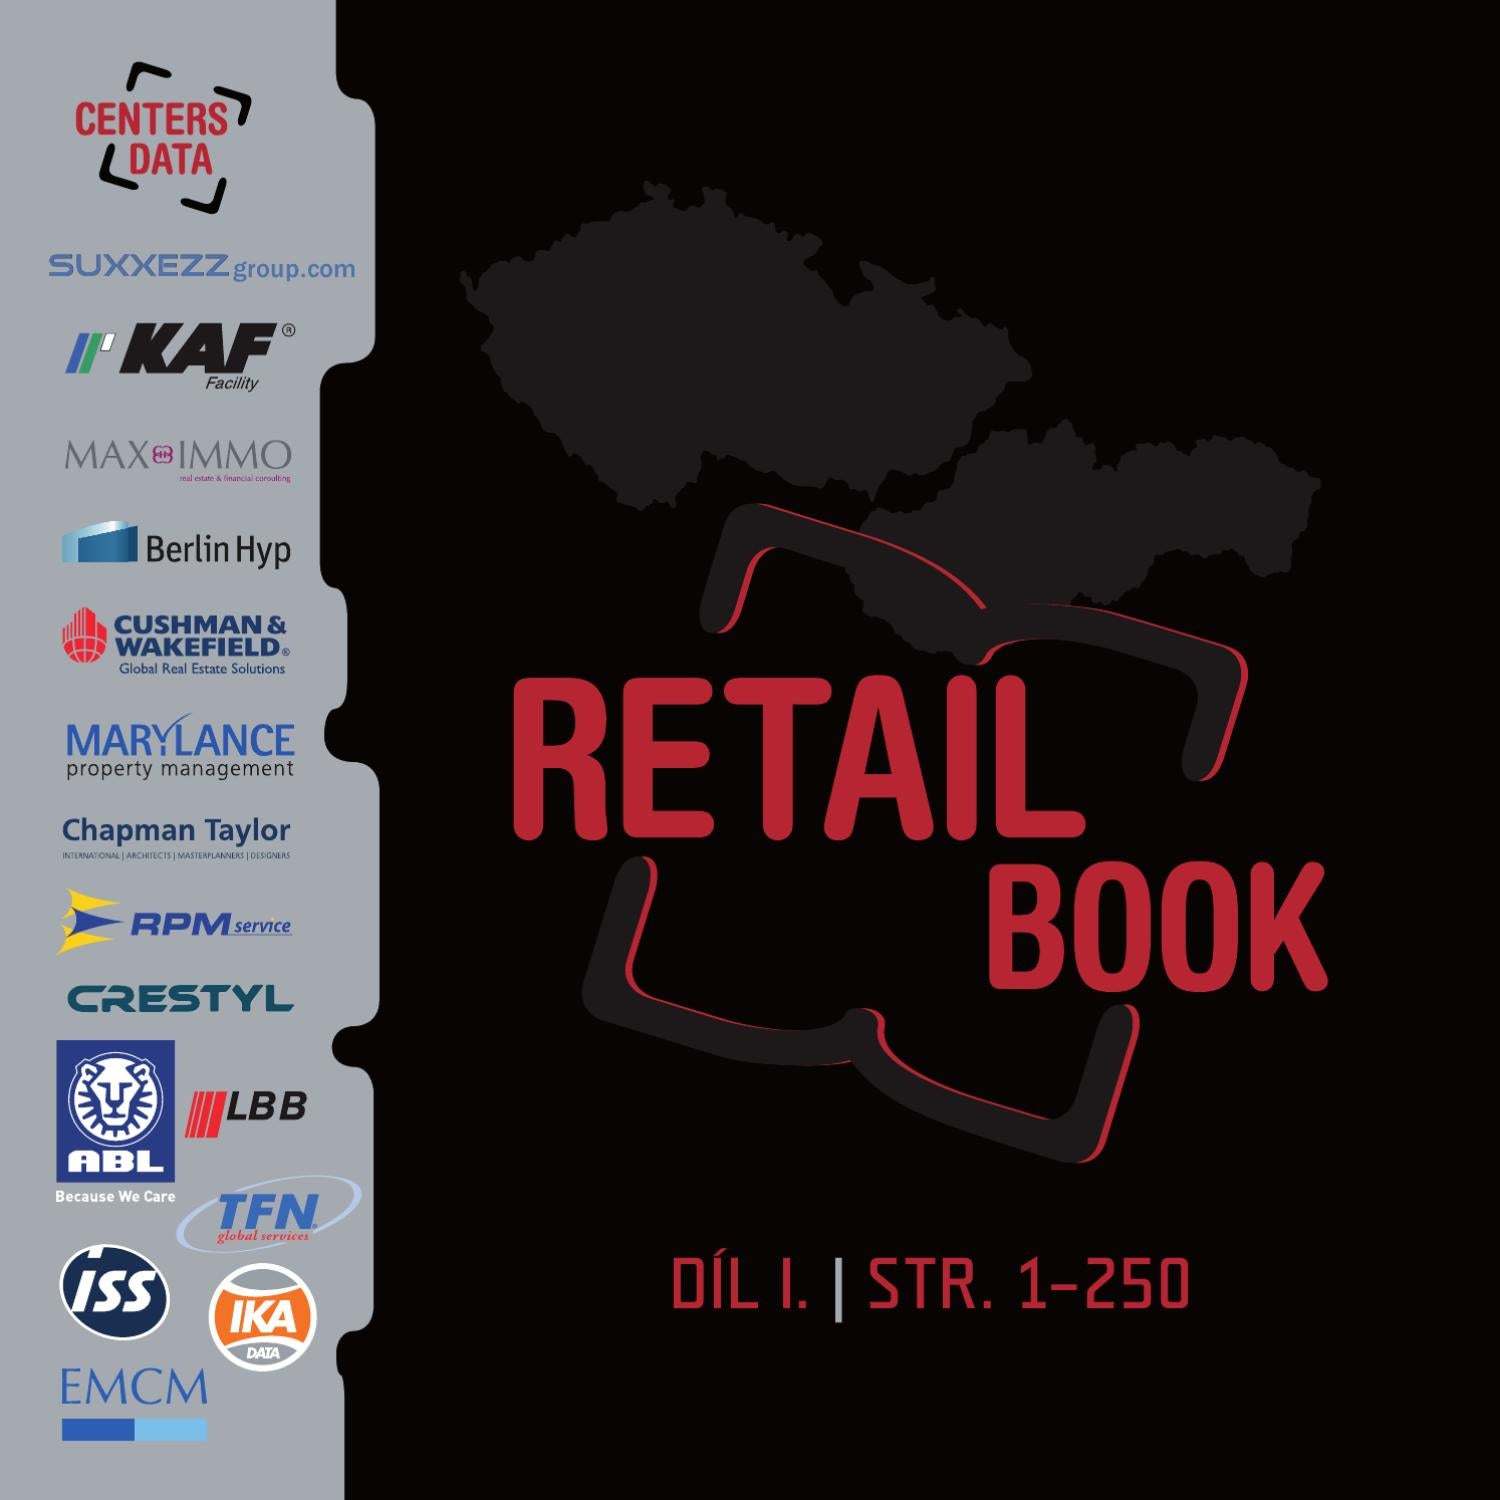 Retail Book (str.1-250) by C enters Publishing s.r.o. - Issuu da73b26c115